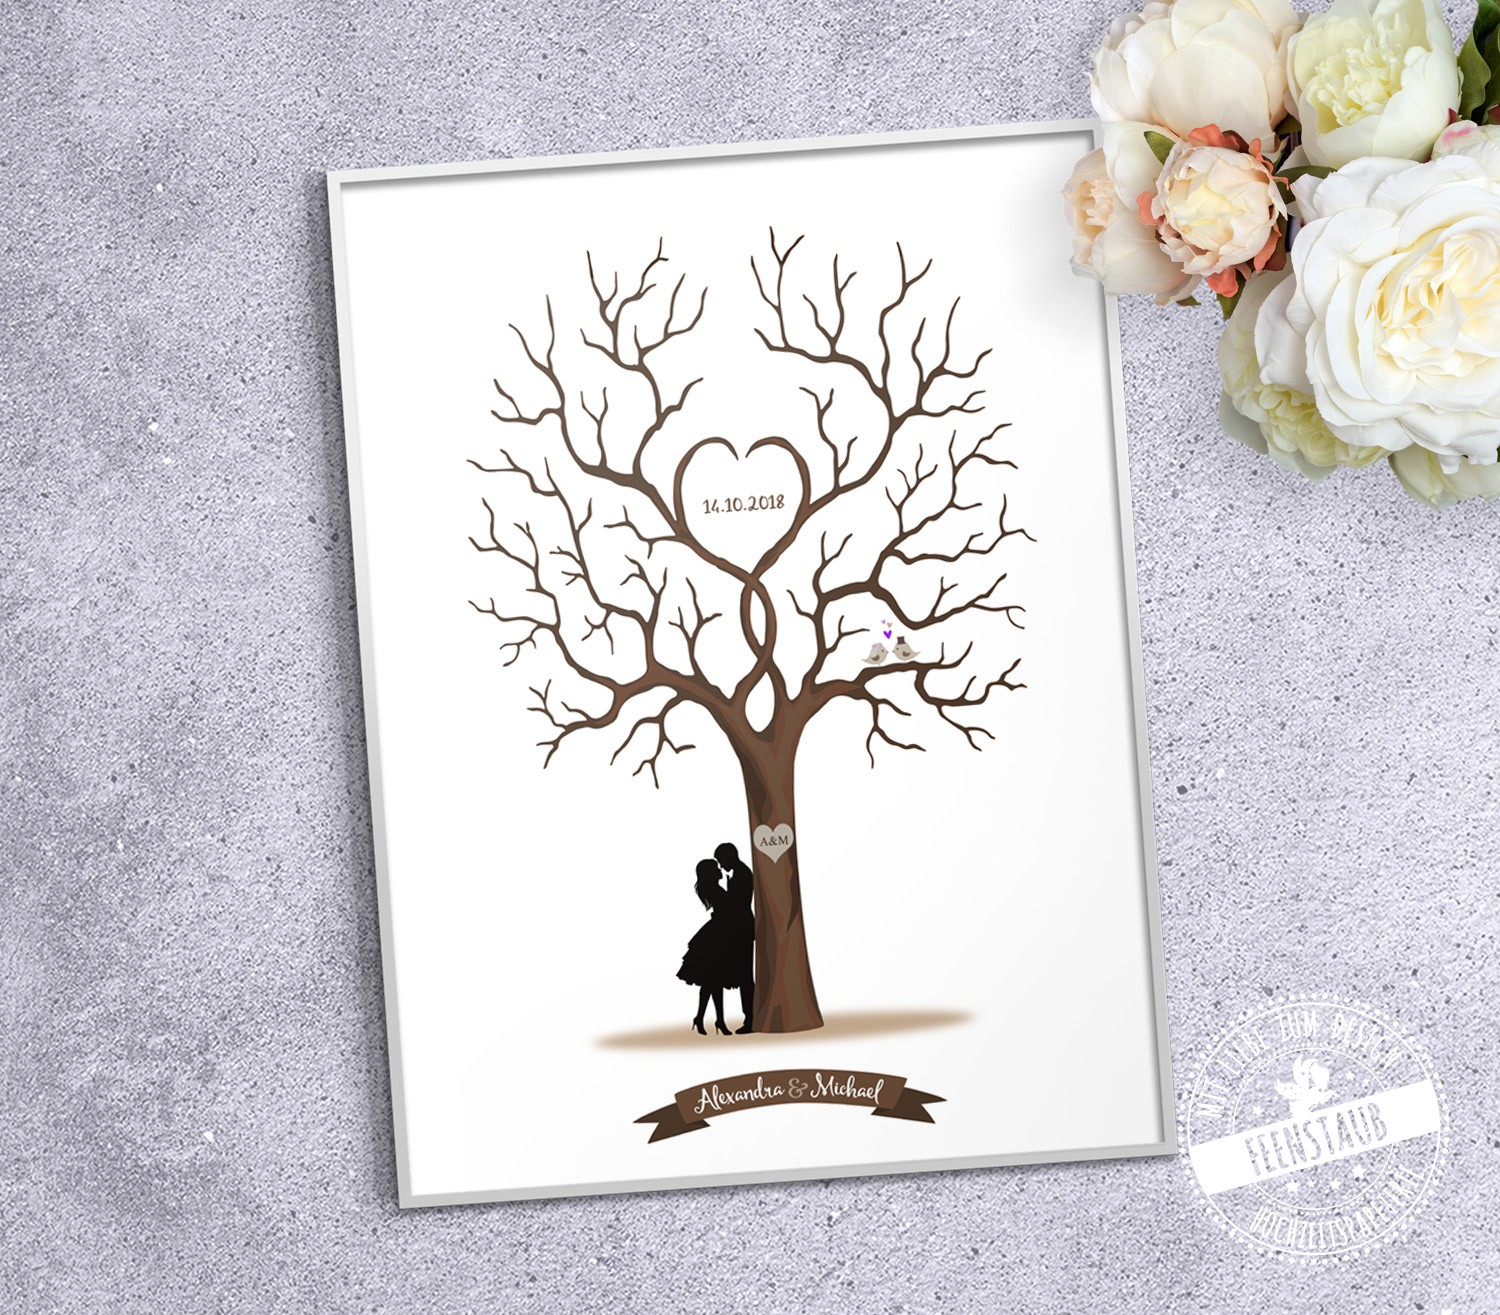 hochzeit leinwand baum leinwanddas wedding tree auto als wedding tree baum hochzeit geschenk. Black Bedroom Furniture Sets. Home Design Ideas